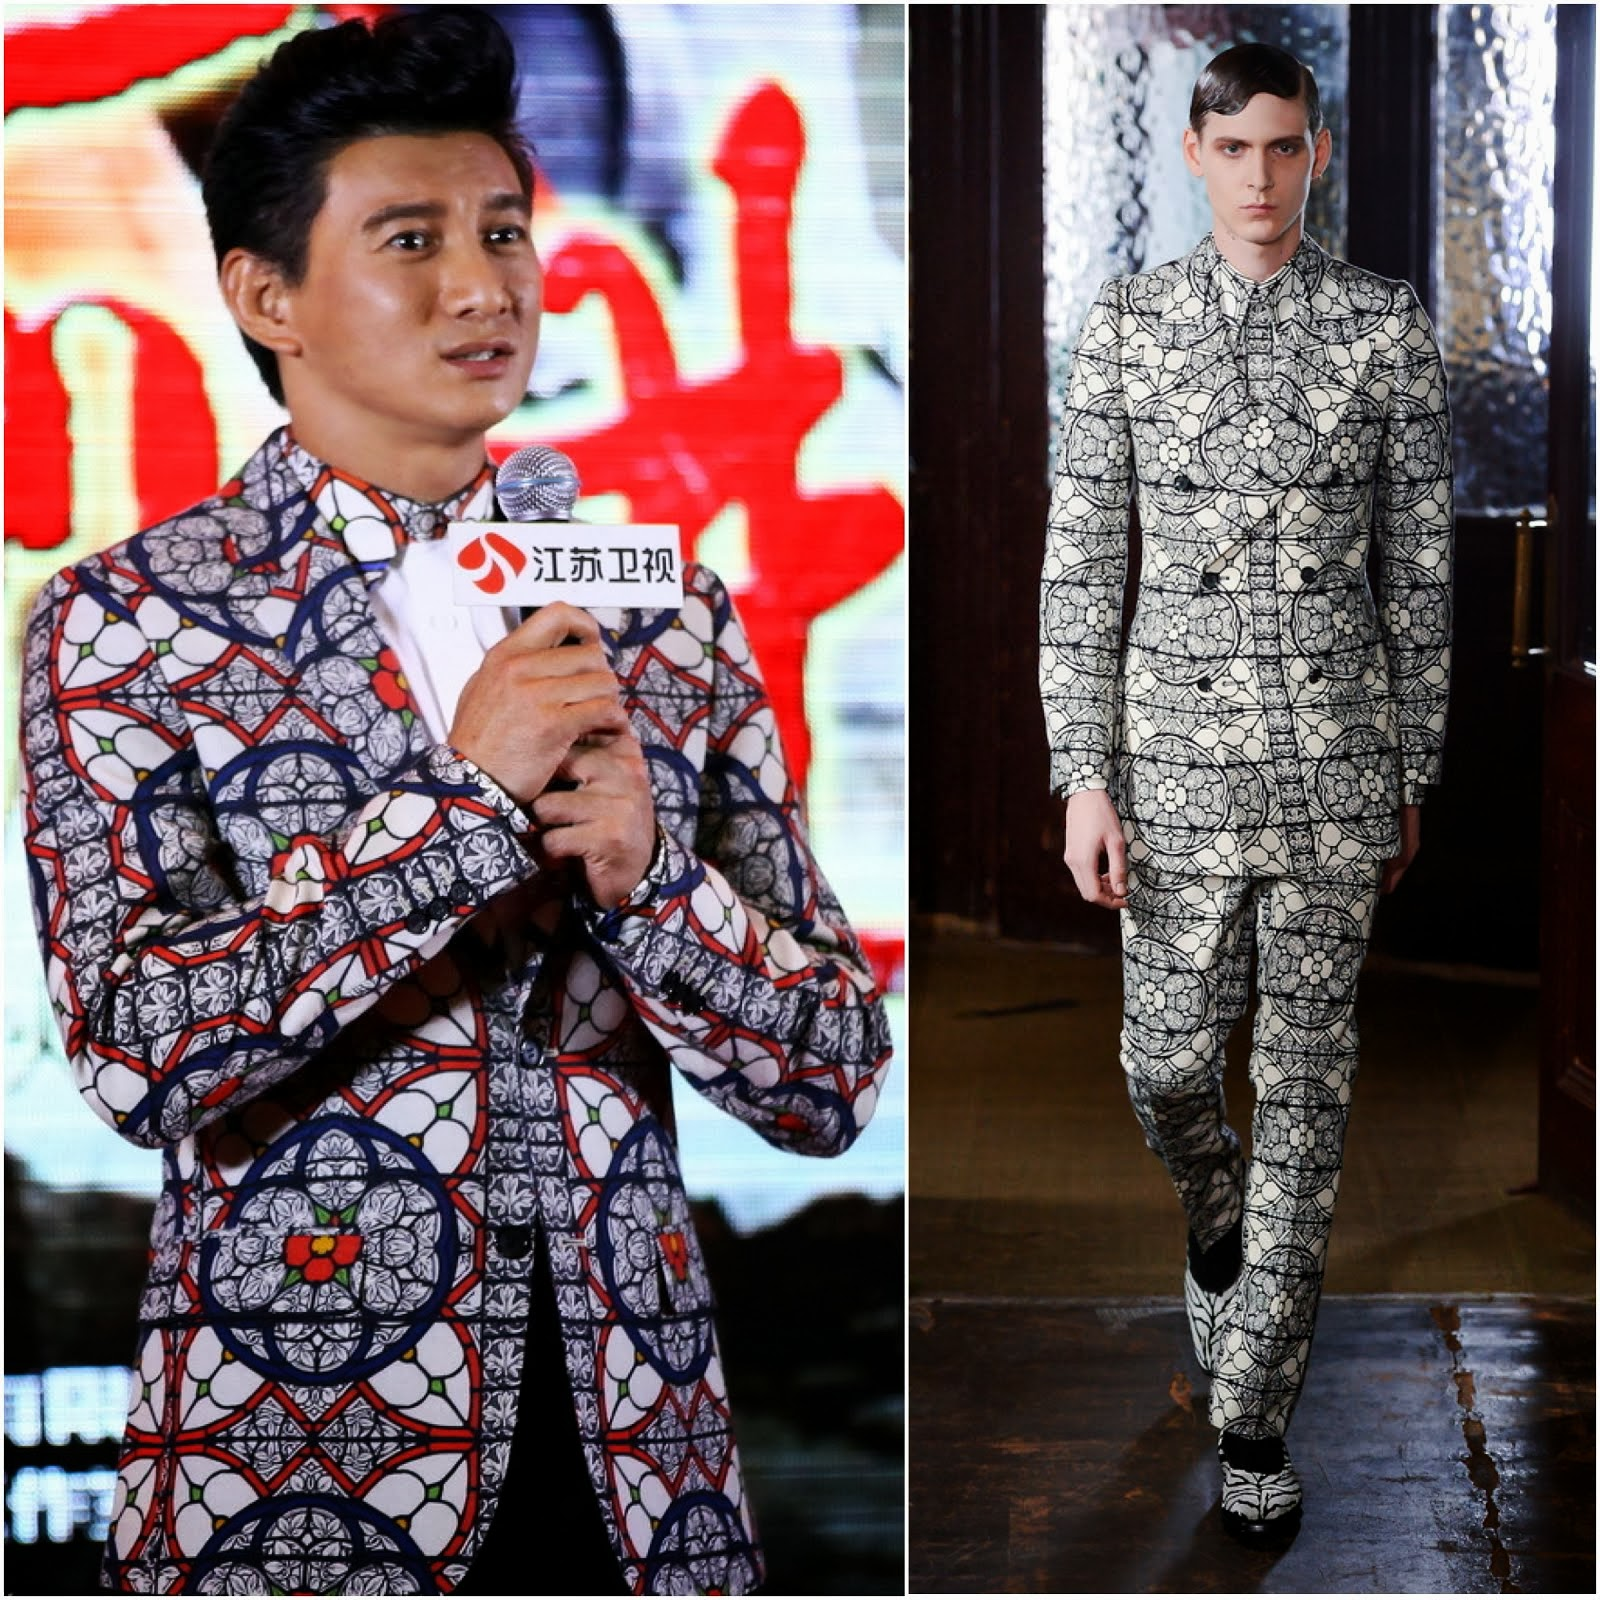 00O00 Menswear Blog: Nicky Wu [吴奇隆] in Alexander McQueen - [向着胜利前进] Photocall